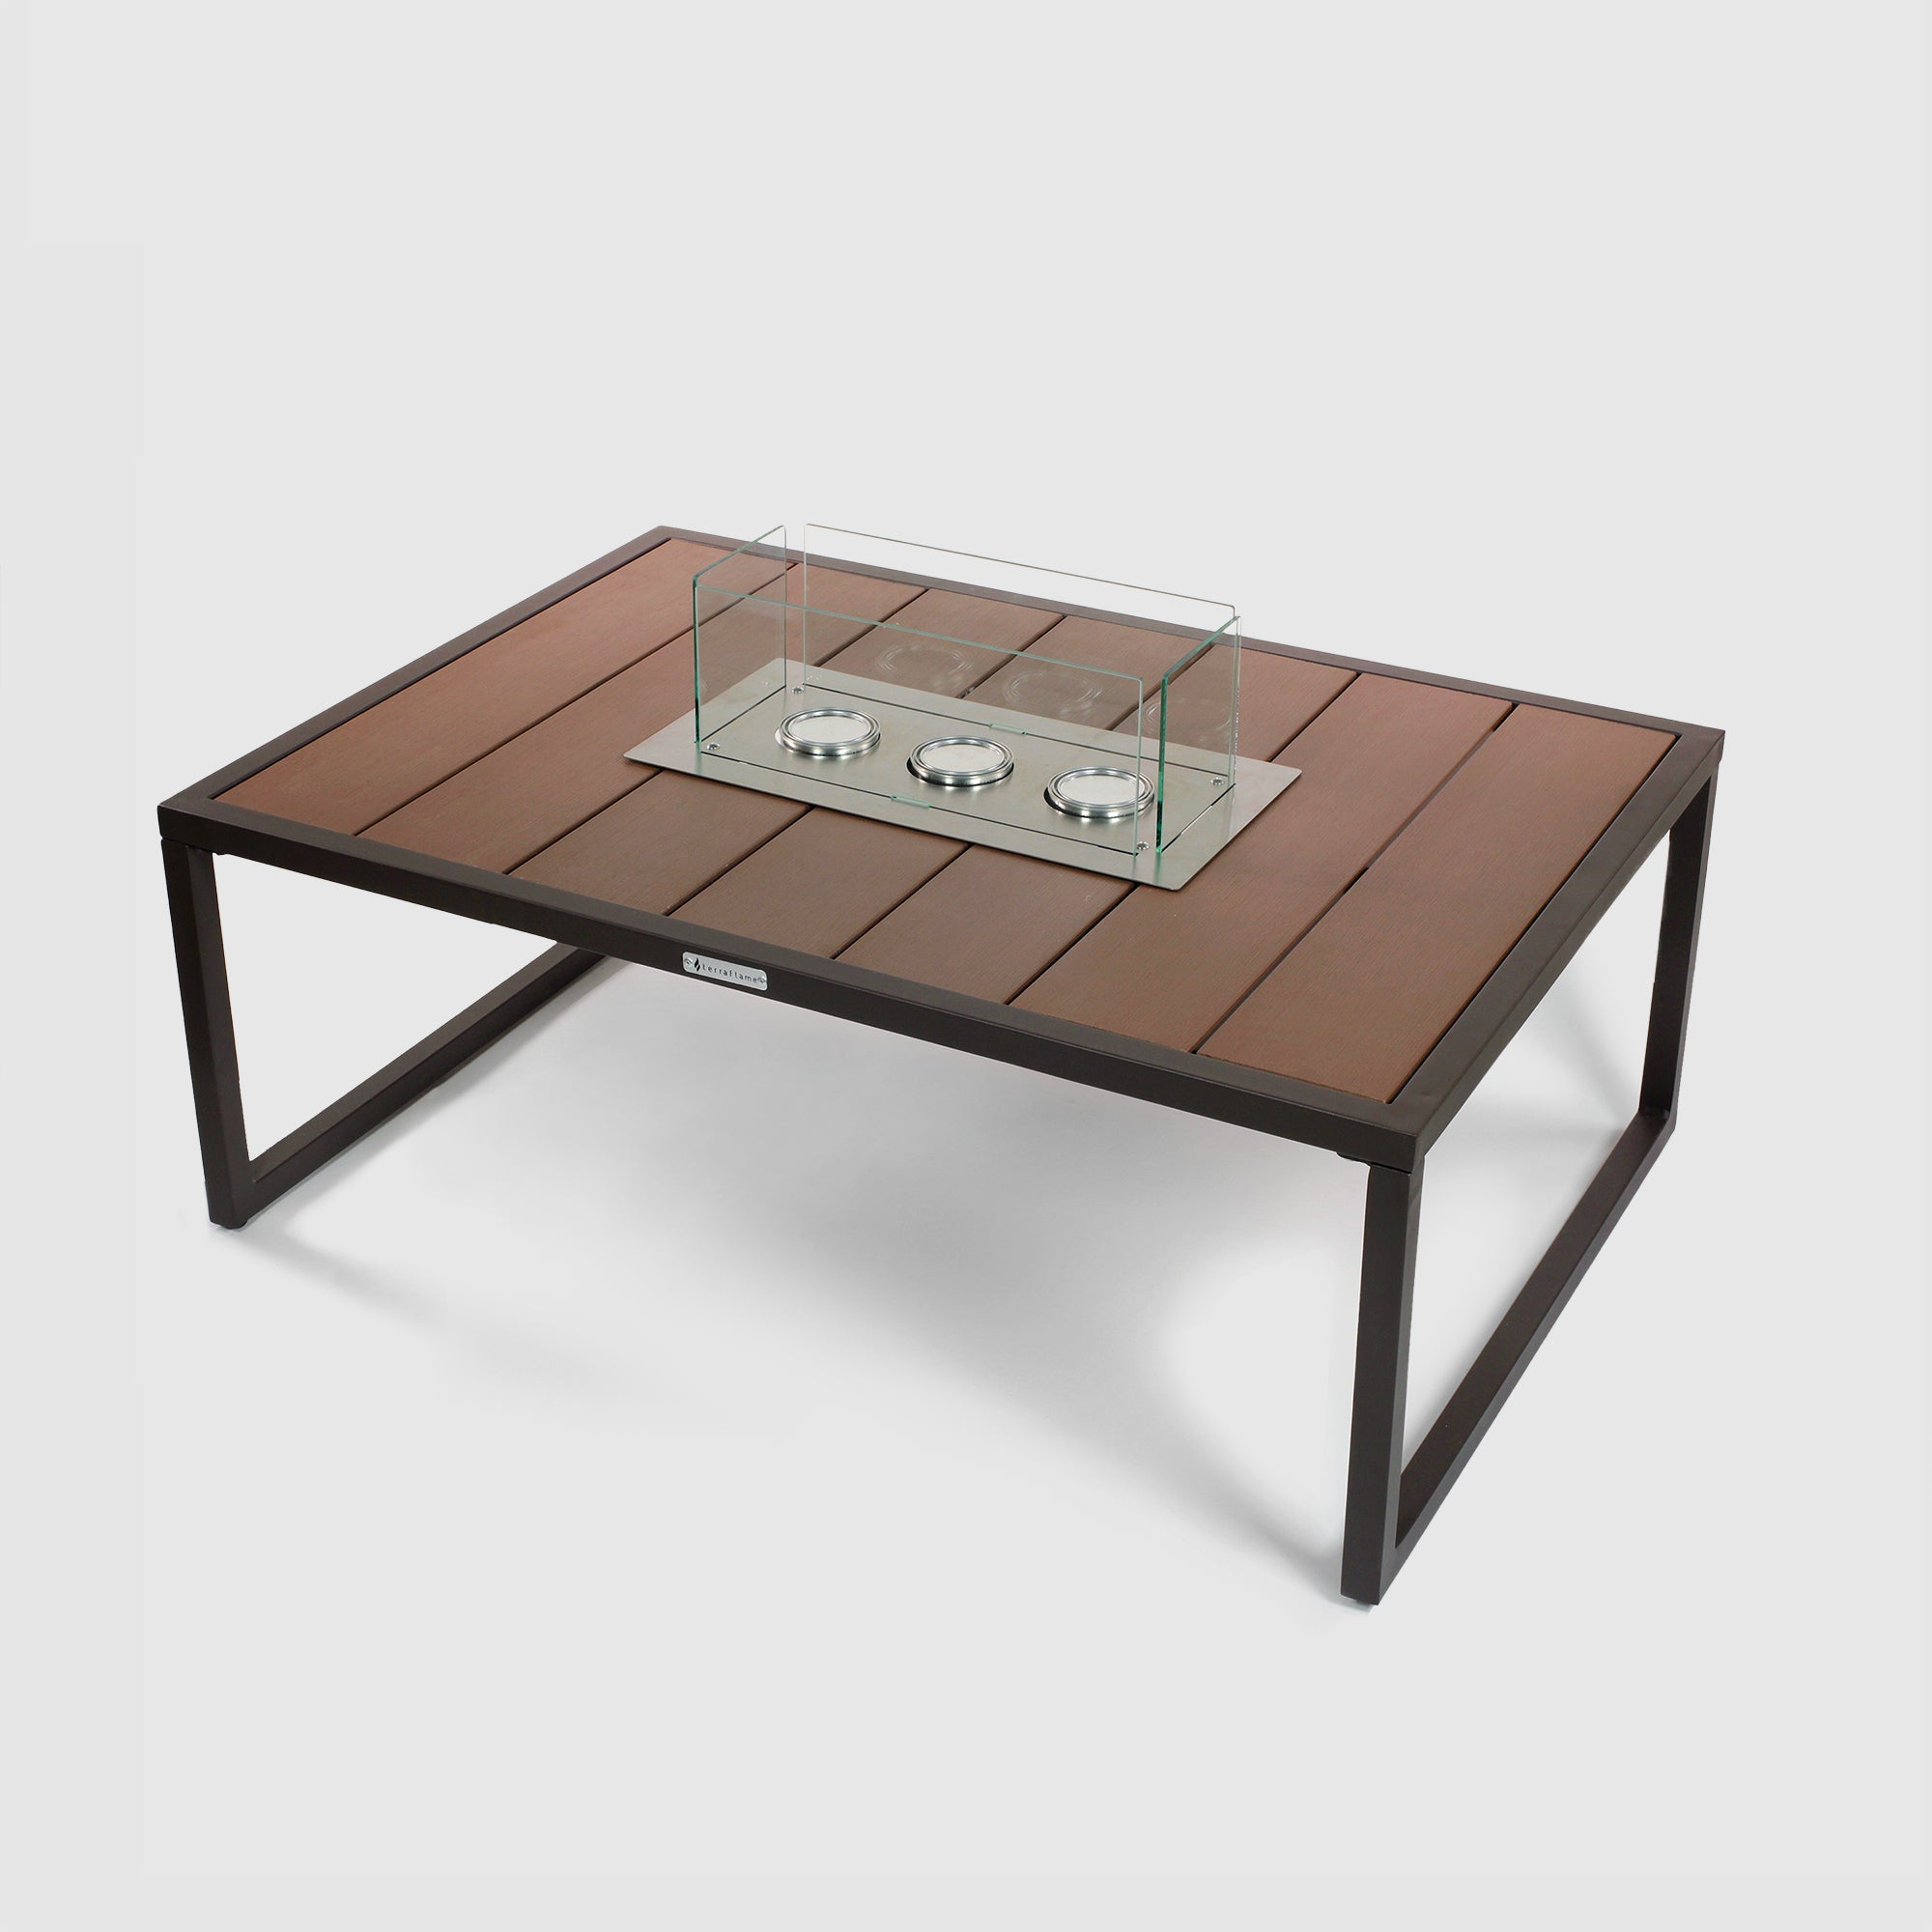 Nero Fire Table in Espresso